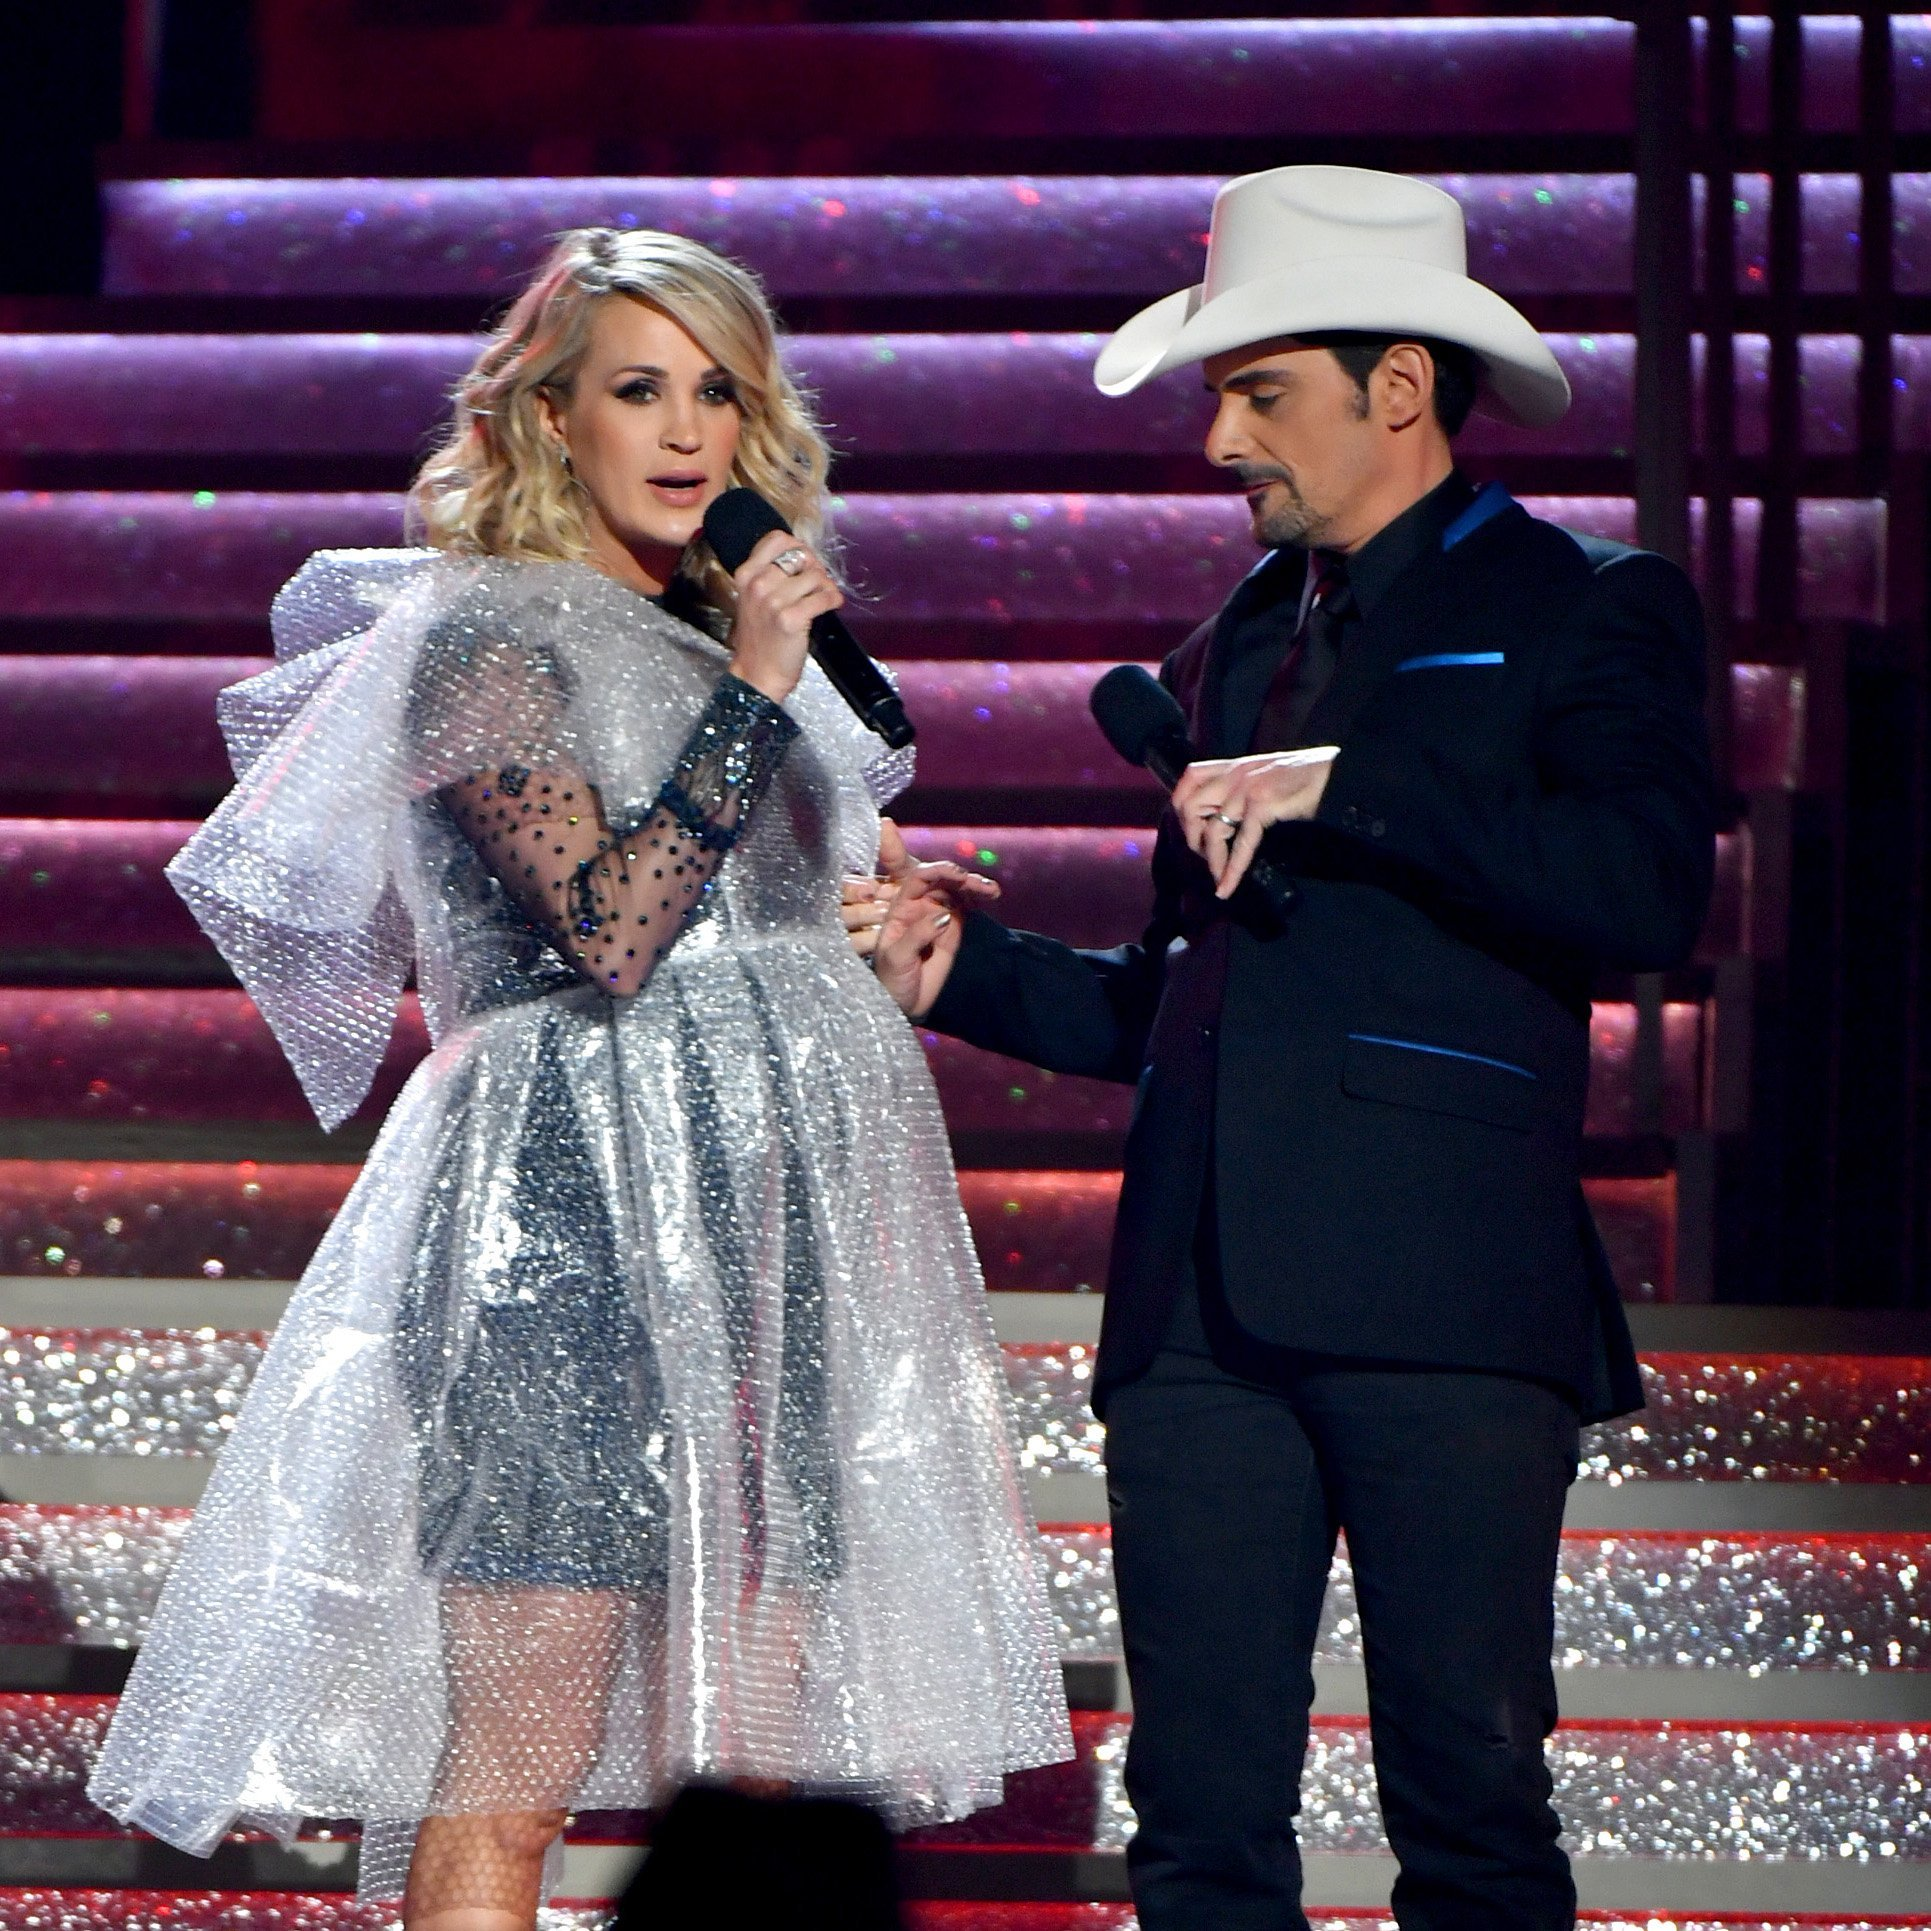 Brad Paisley and Carrie Underwood co-hosting the 52nd annual CMA Awards at the Bridgestone Arena on November 14, 2018 in Nashville, Tennessee | Photo: Getty Images